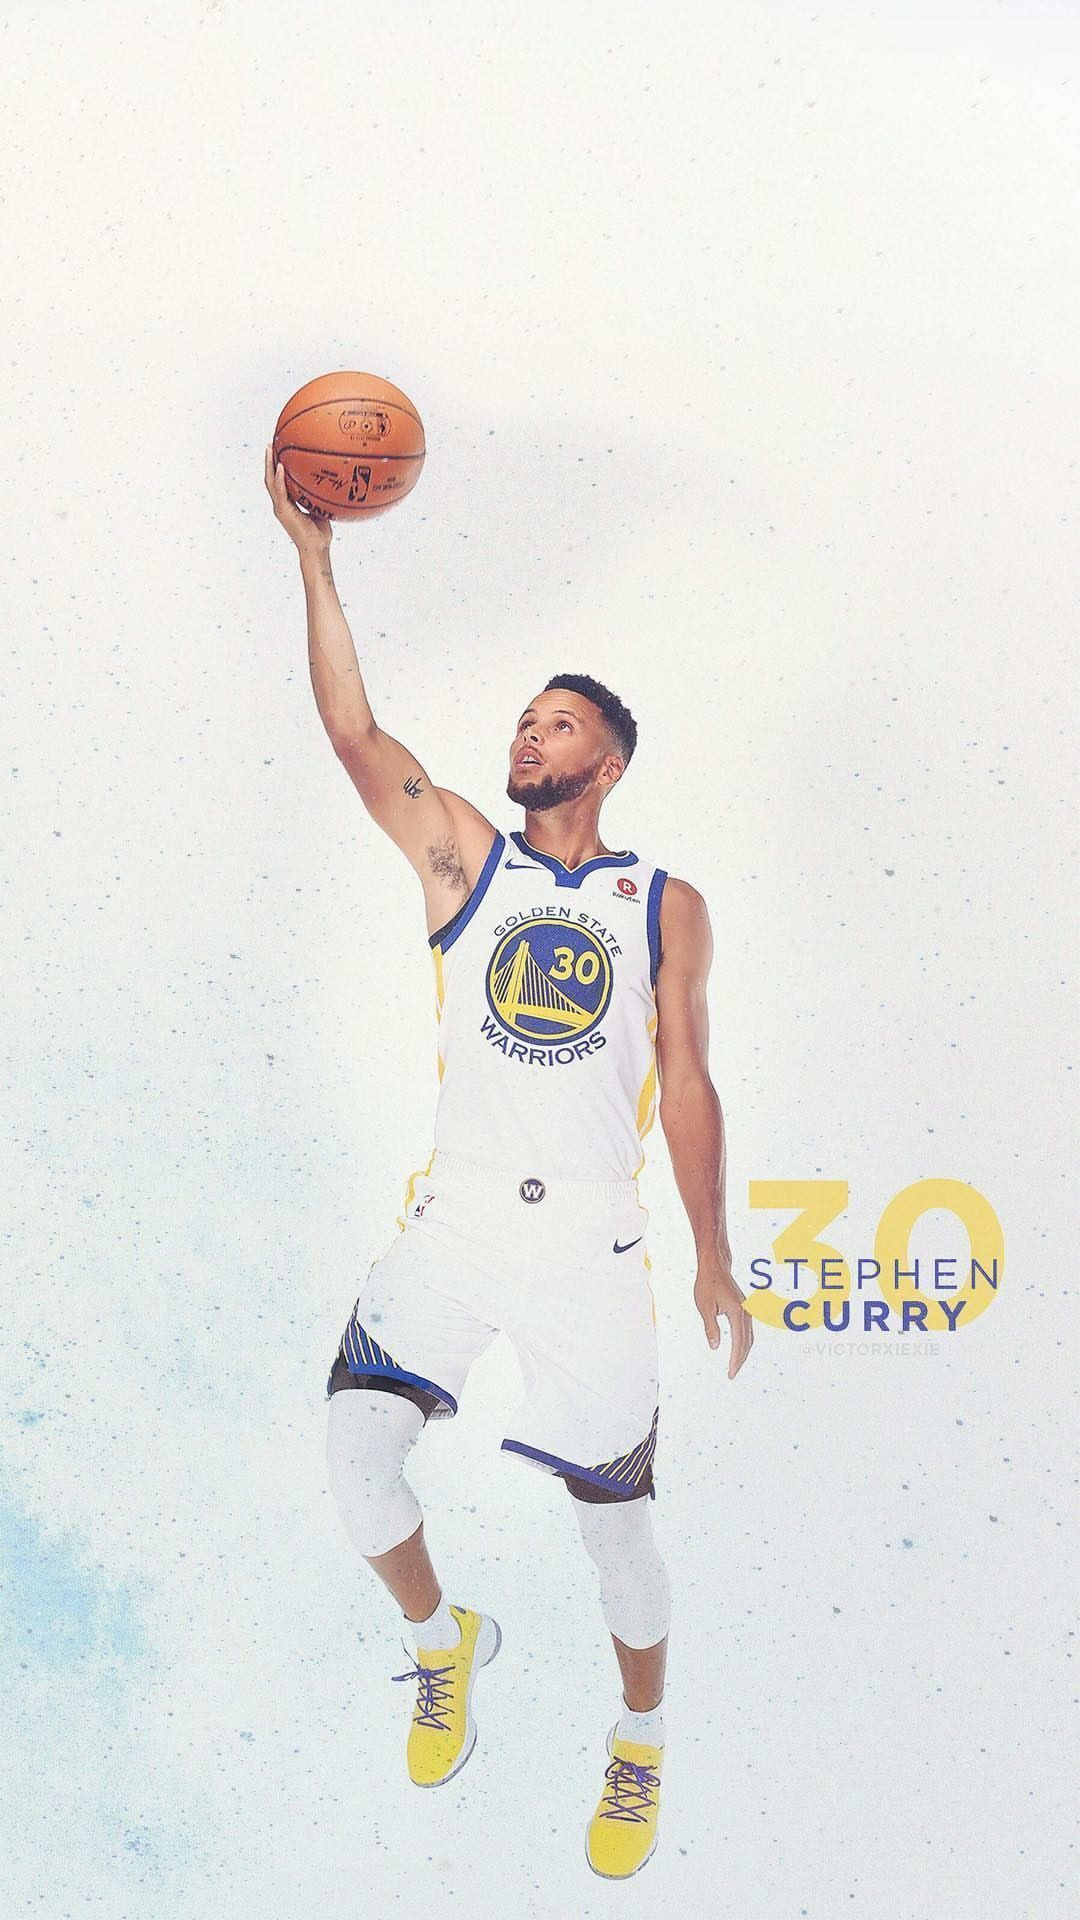 Stephen Curry Hd Wallpapers Hupages Download Iphone Wallpapers Stephen Curry Wallpaper Stephen Curry Nba Stephen Curry